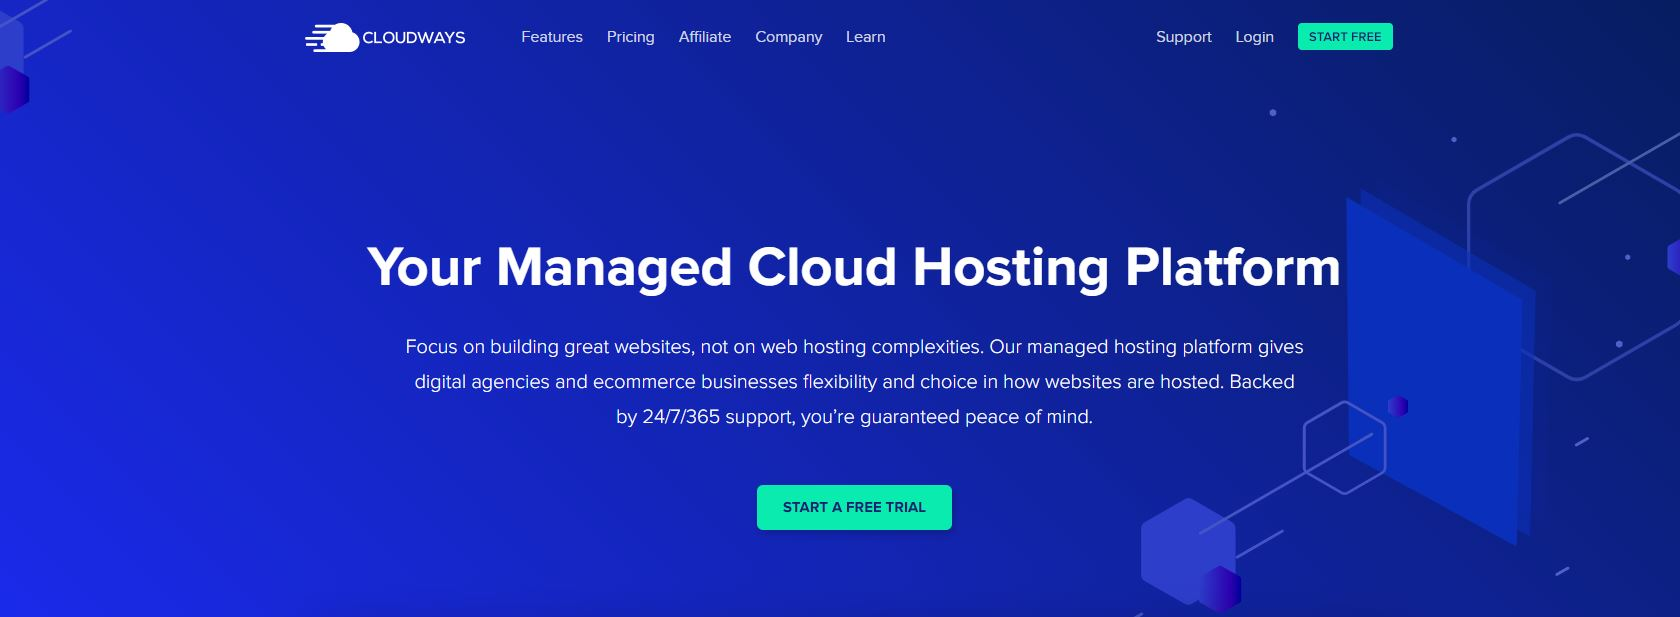 CloudWays cloud hosting